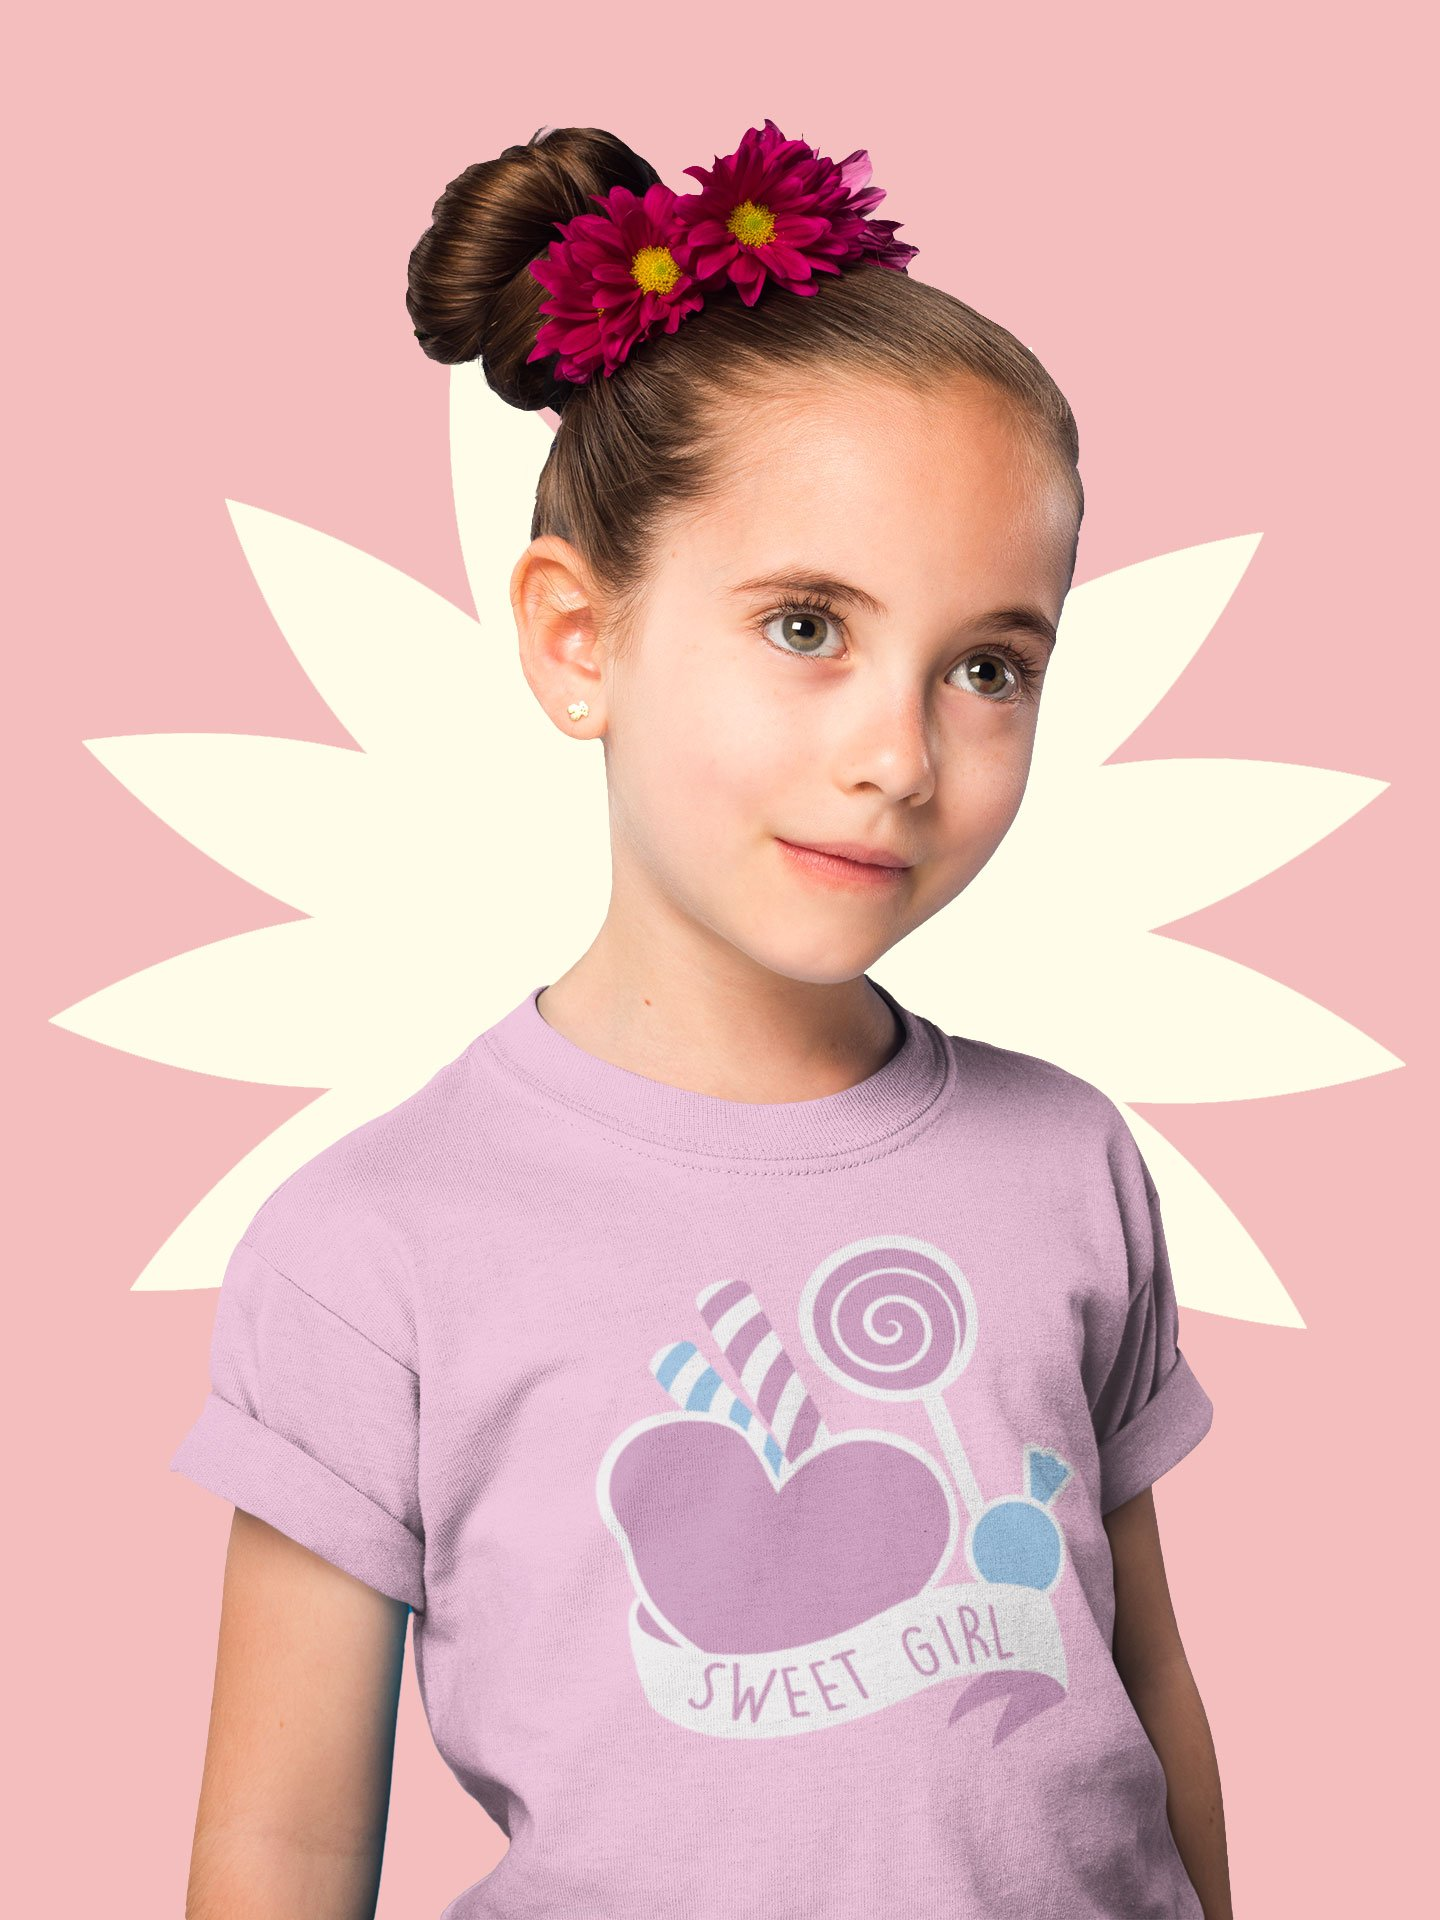 Sweet Girl design Tees for girls